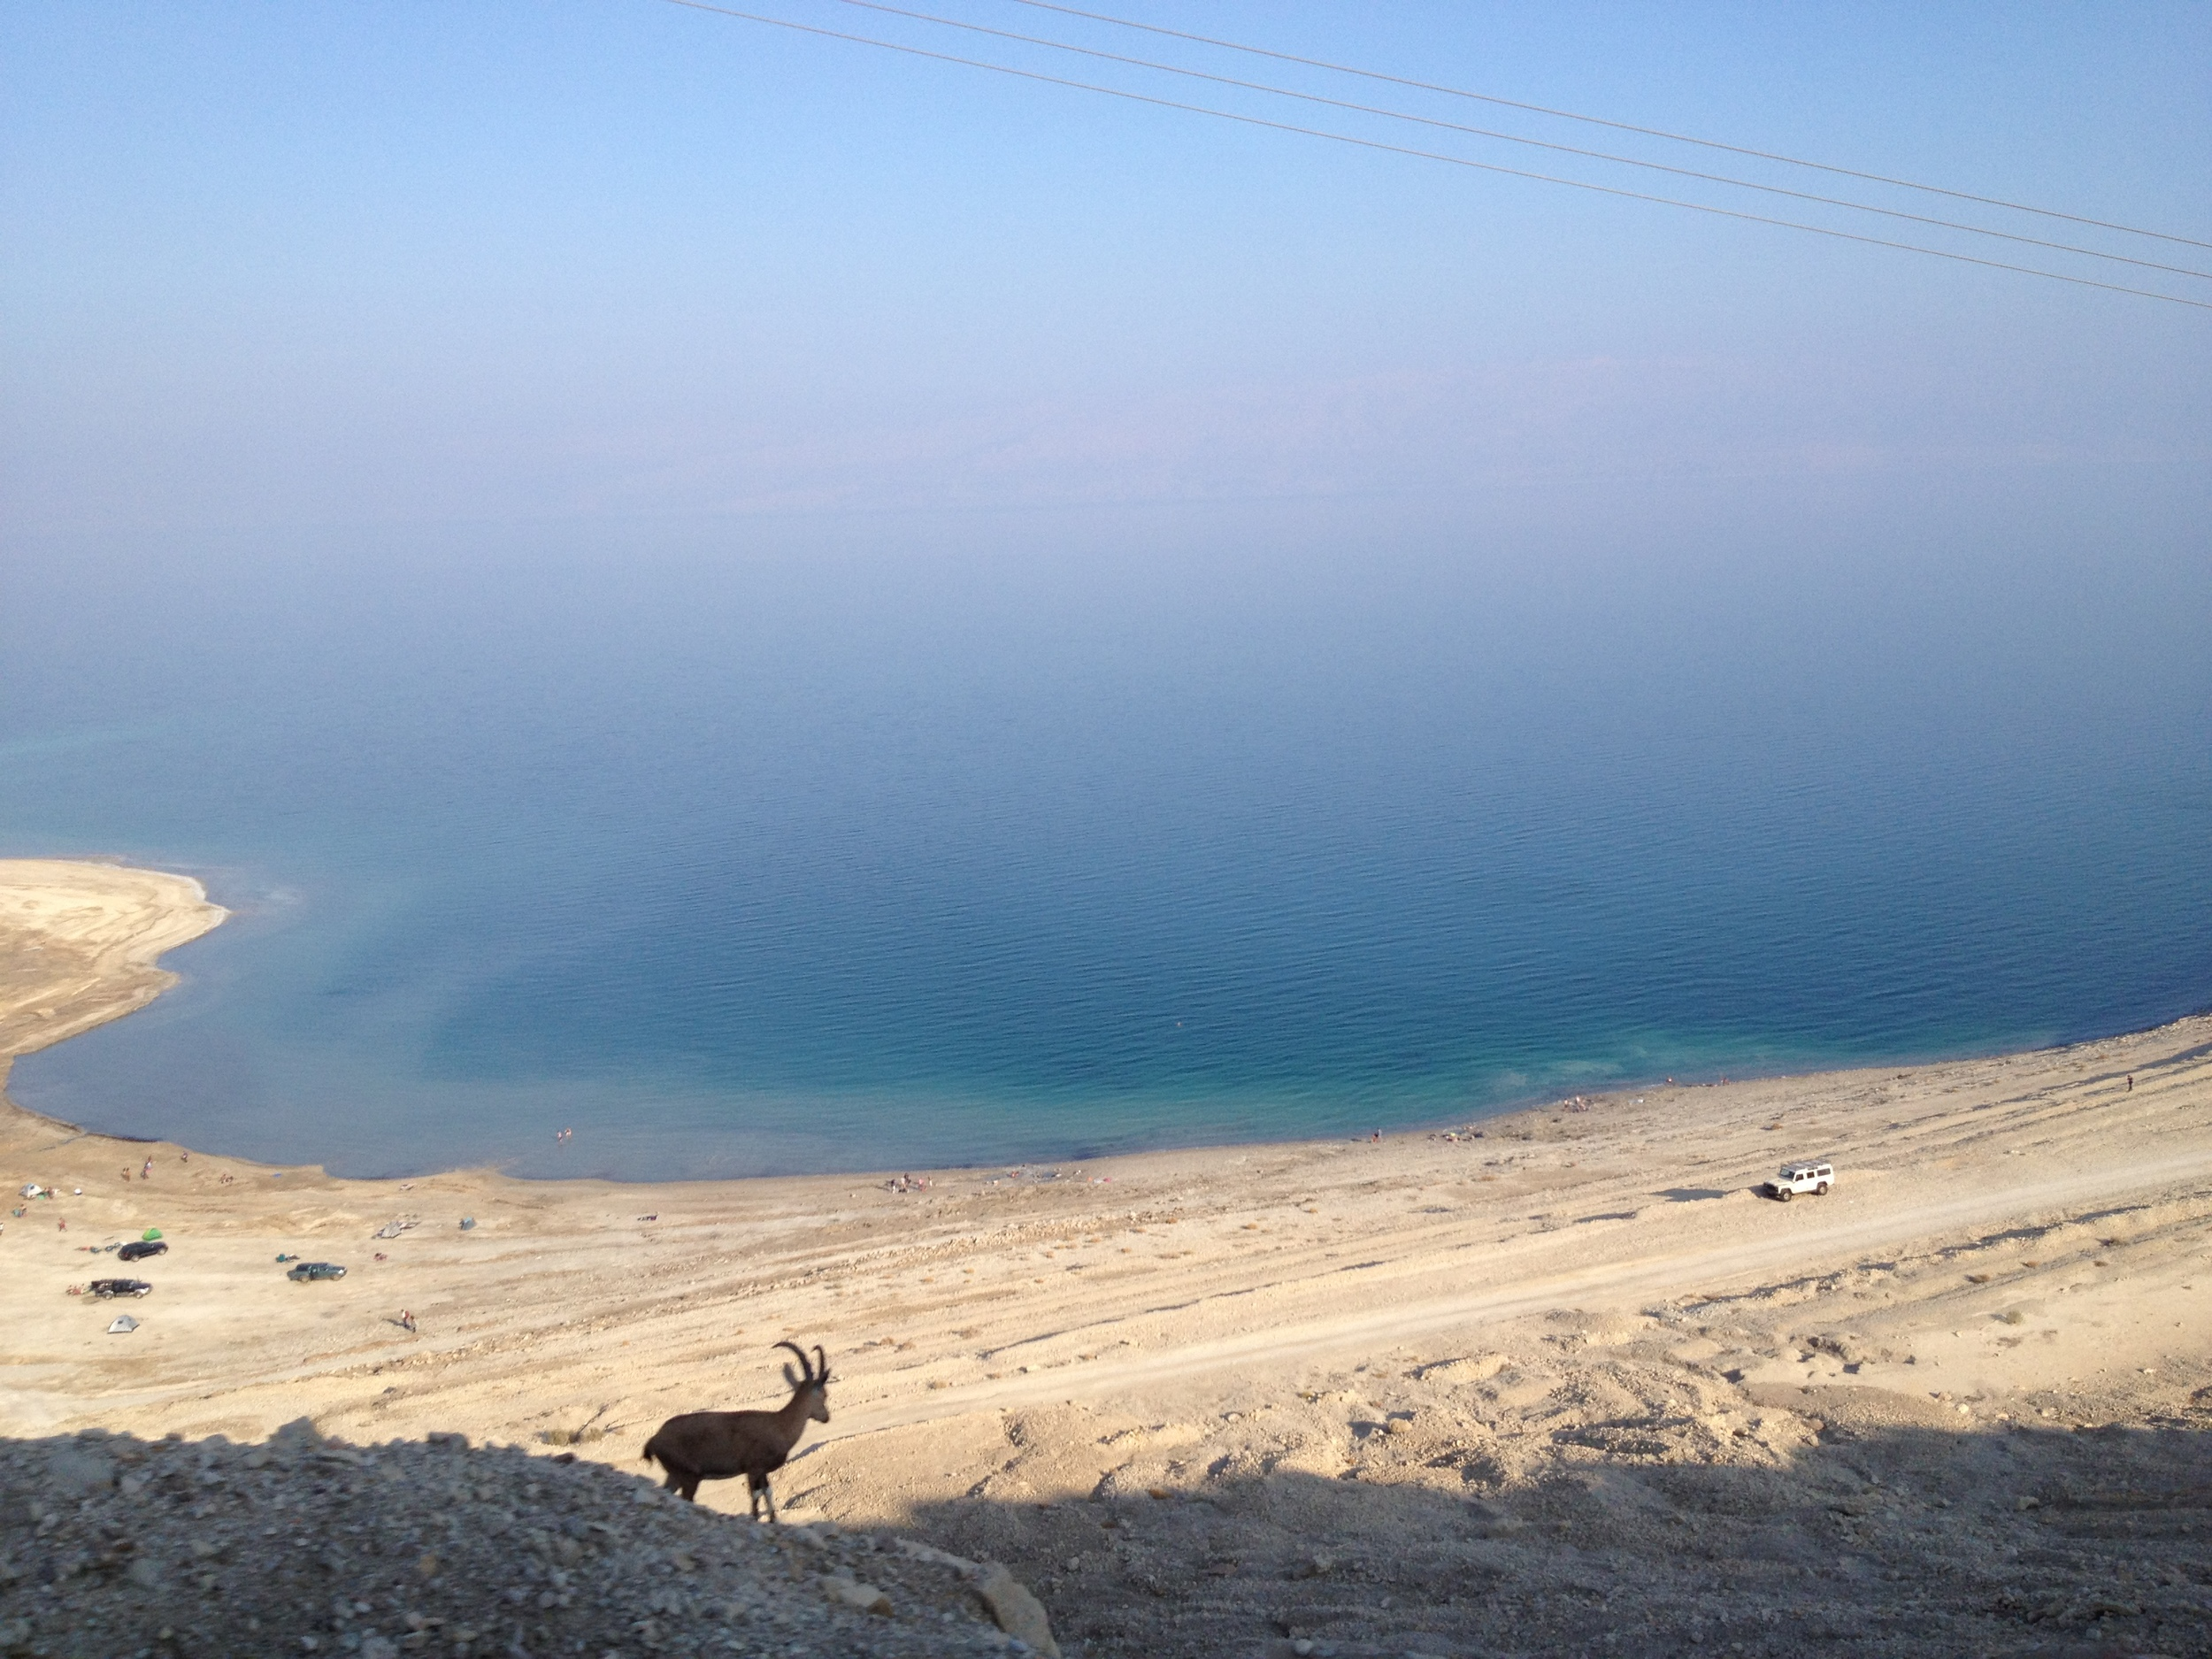 On the way to the Dead Sea, Israel, December 2012